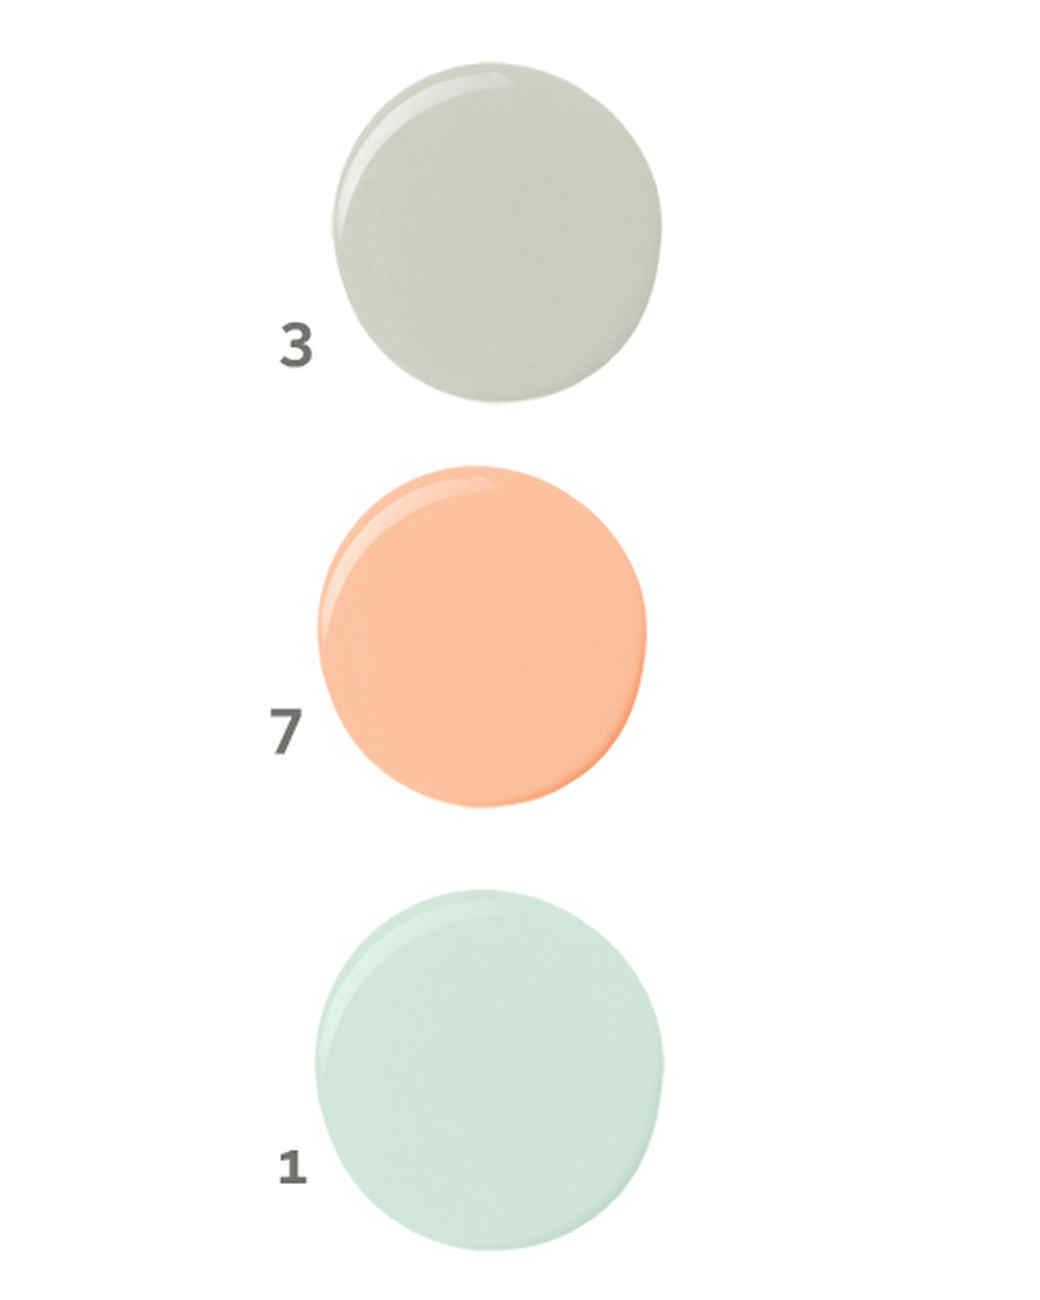 mld104784_0510_paint_swatches3.jpg